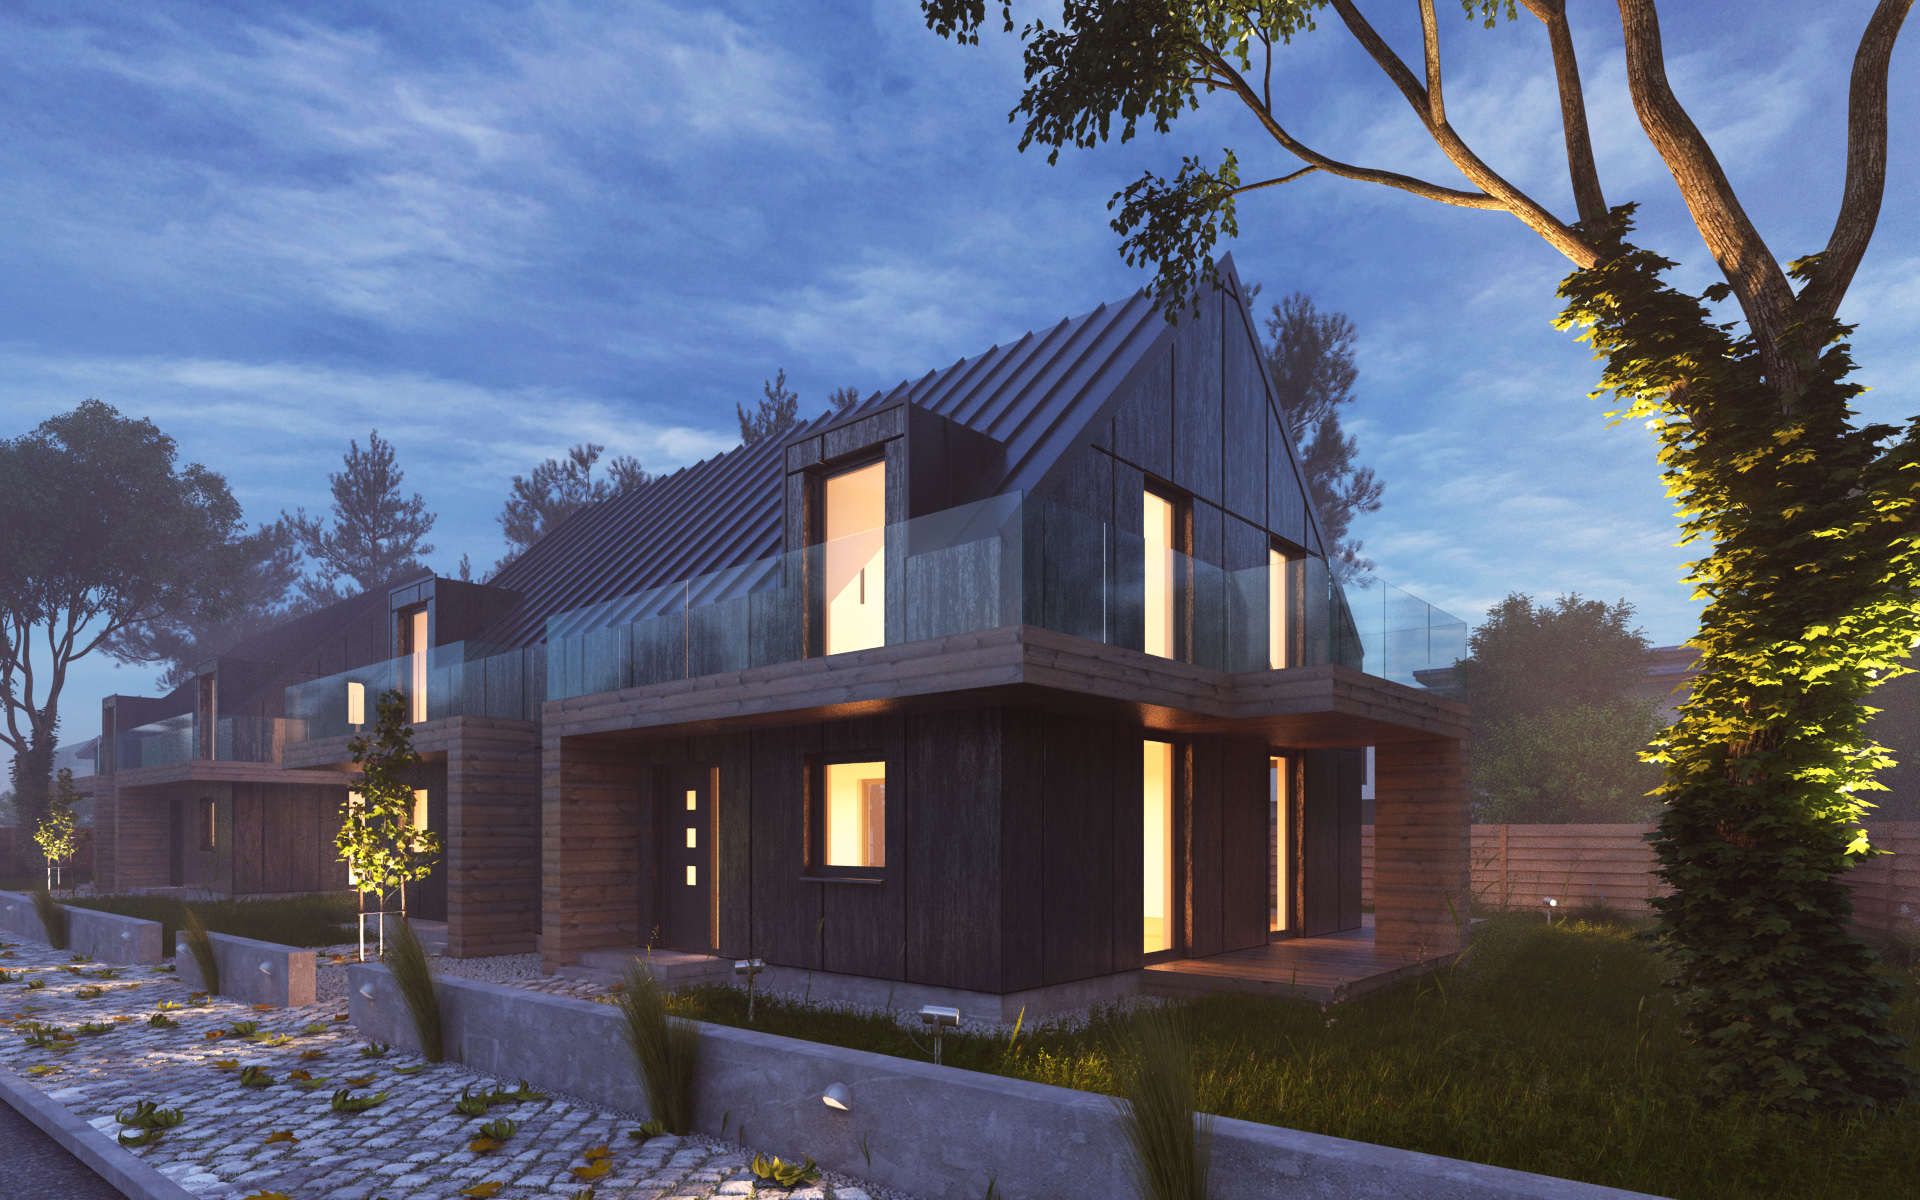 3ds max vray exterior night scene free download